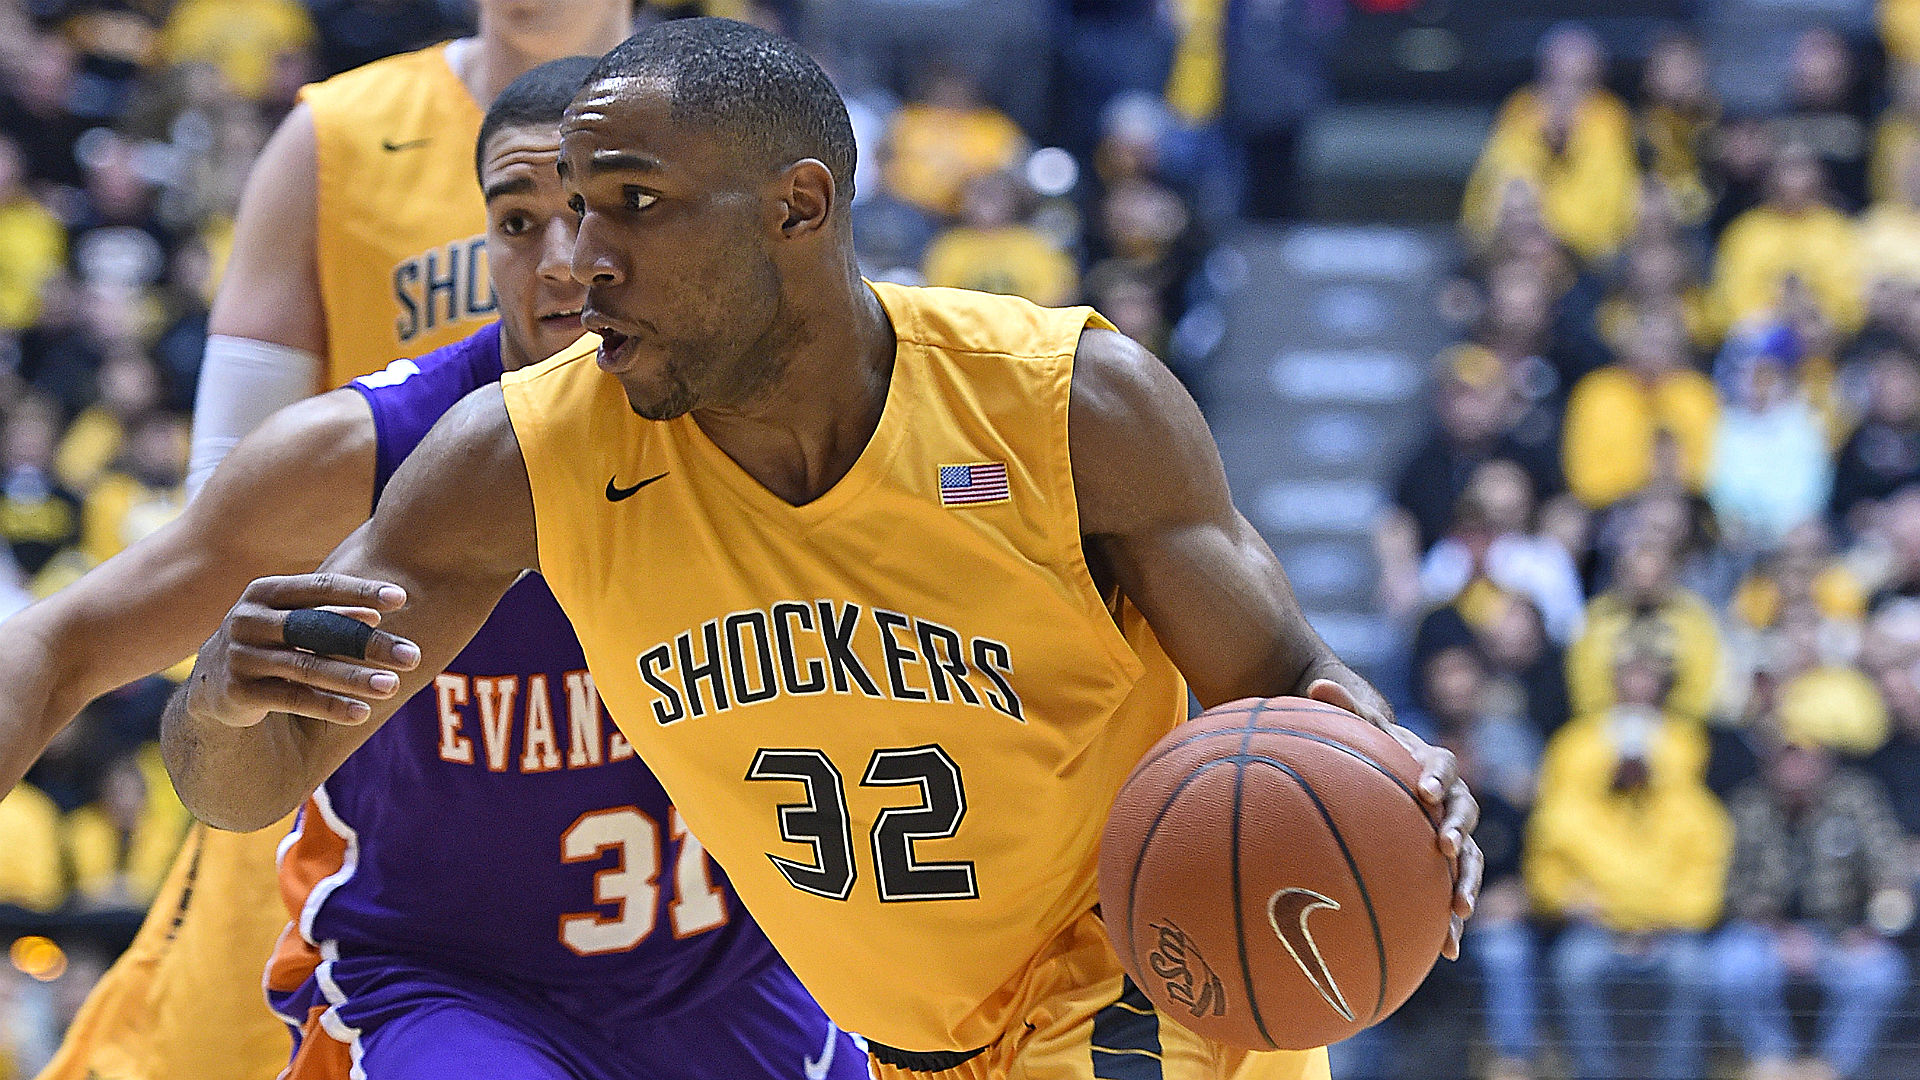 Saturday afternoon college basketball betting lines and picks – Wichita State eyes revenge vs. Northern Iowa